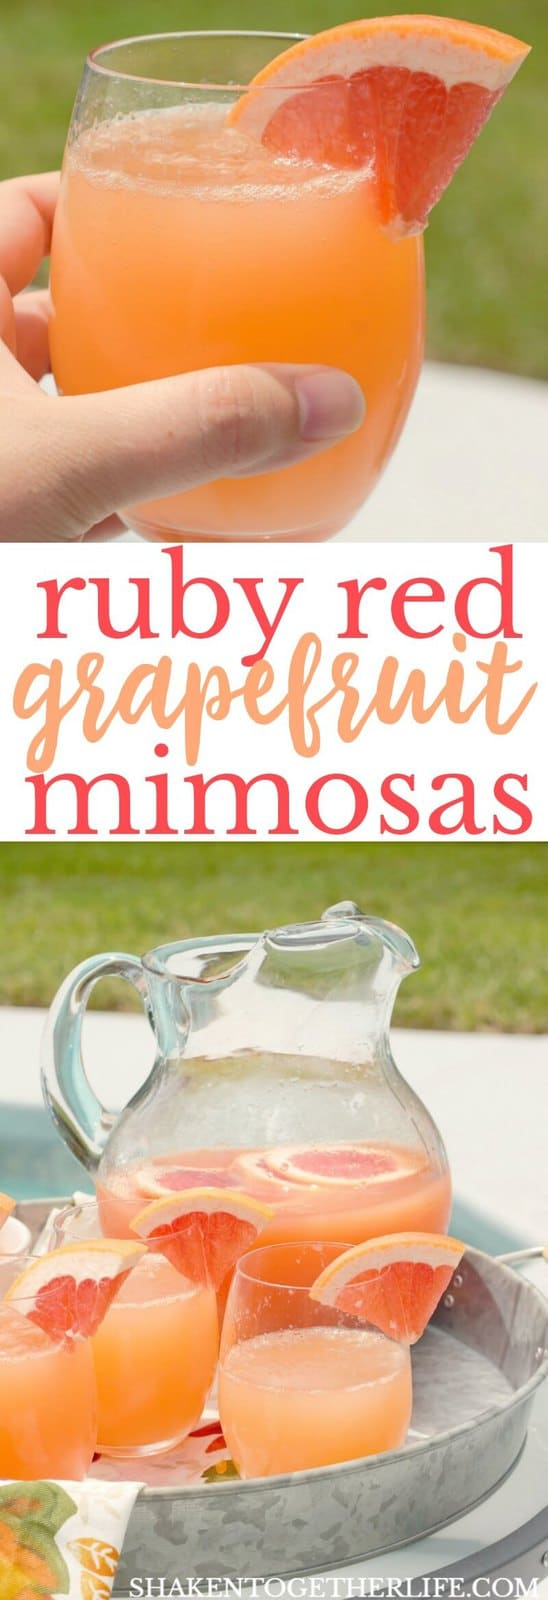 With just 2 ingredients, these Ruby Red Grapefruit Mimosas will be the life of every pool party, girls day and brunch!